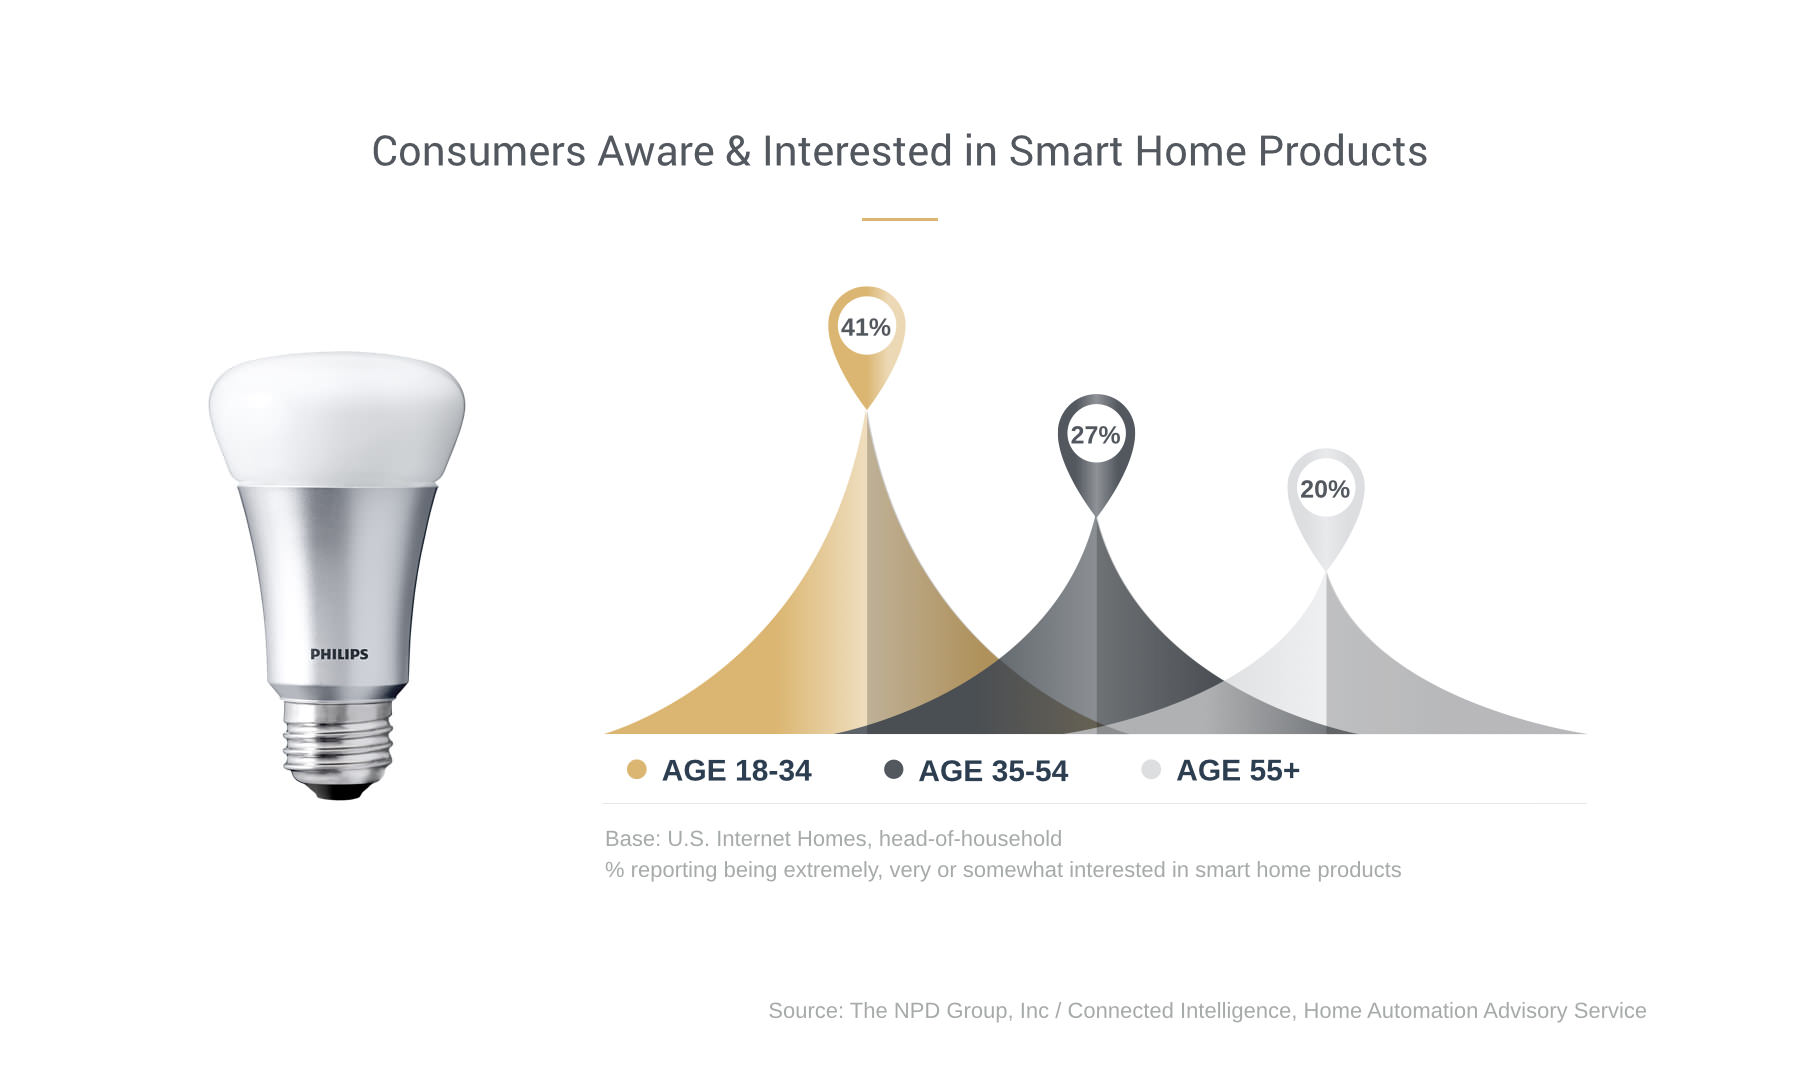 Millennials & The Smart Home